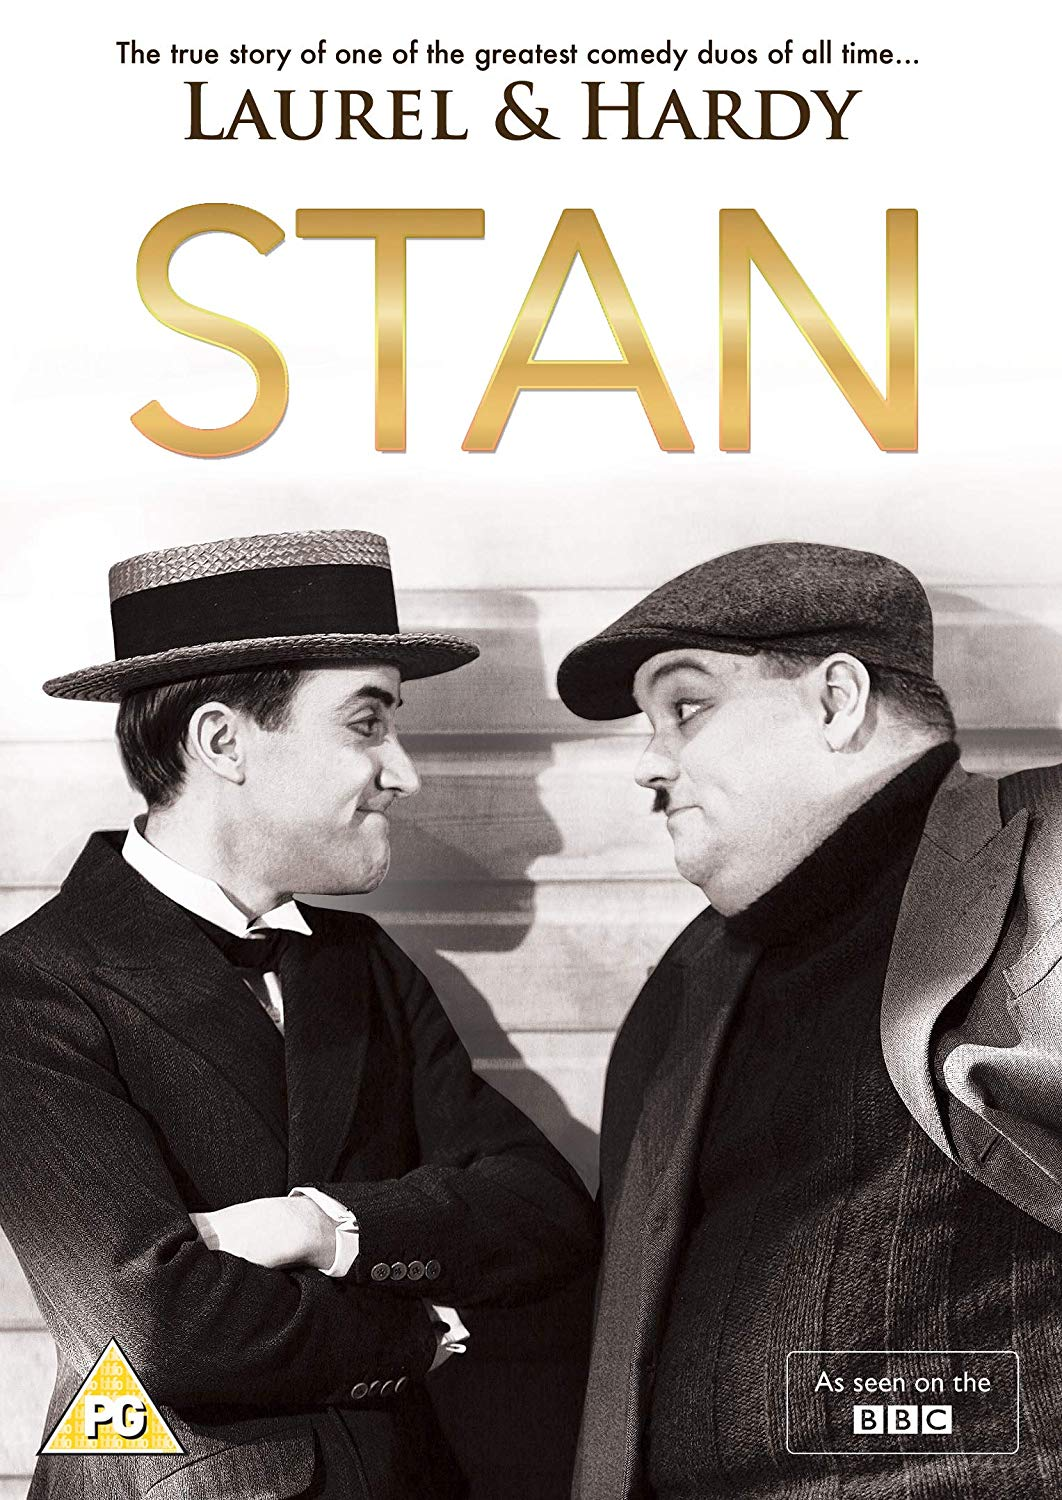 Image of Stan - The Tue Story of the Greatest Comedy Duo Laurel & Hardy (DVD)